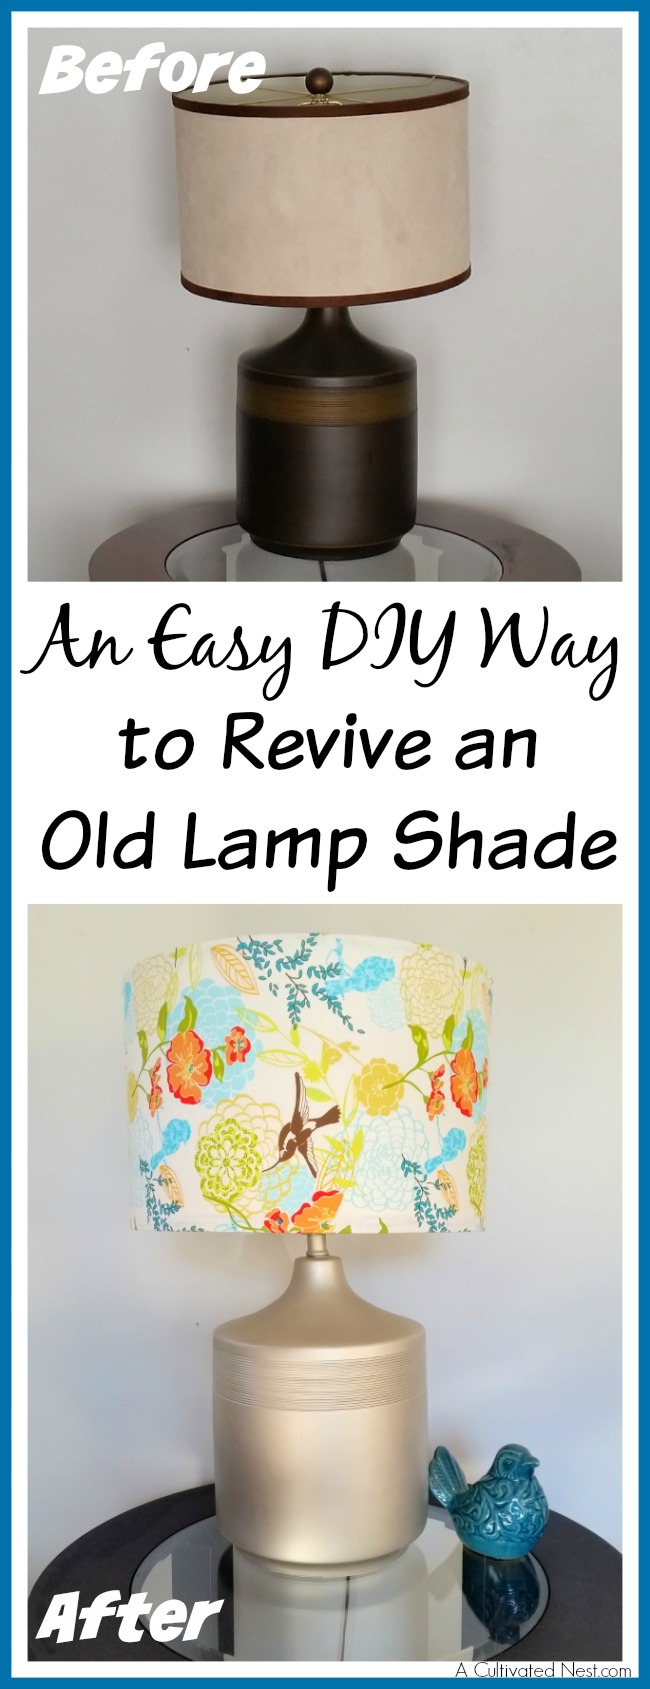 An easy DIY way to revive an old lamp shade